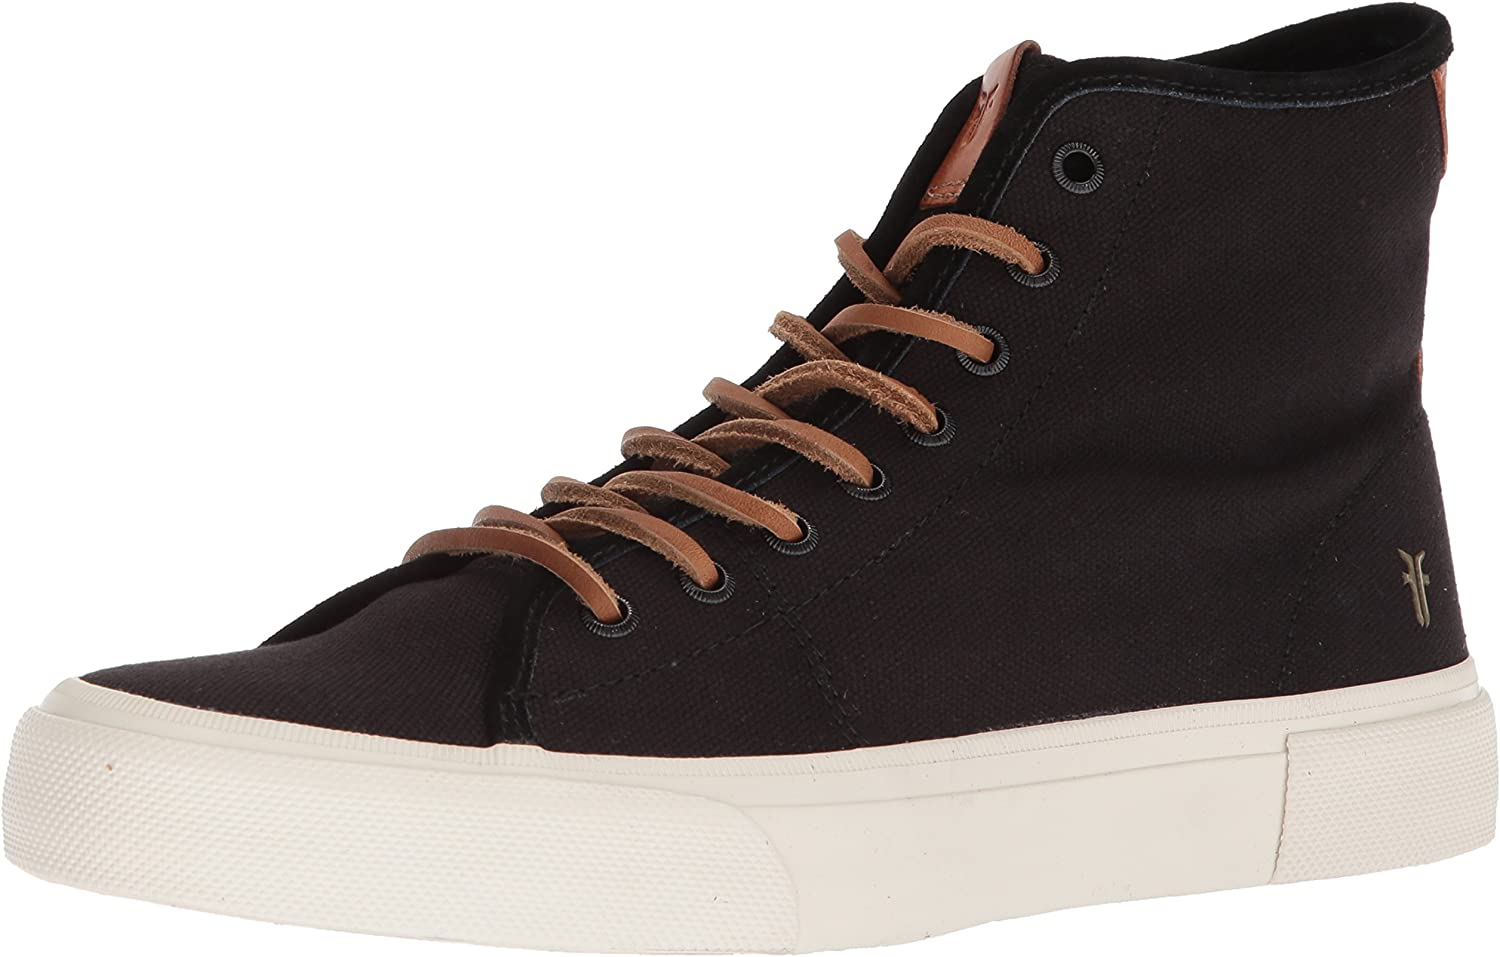 FRYE Men's Ludlow High Tennis shoes